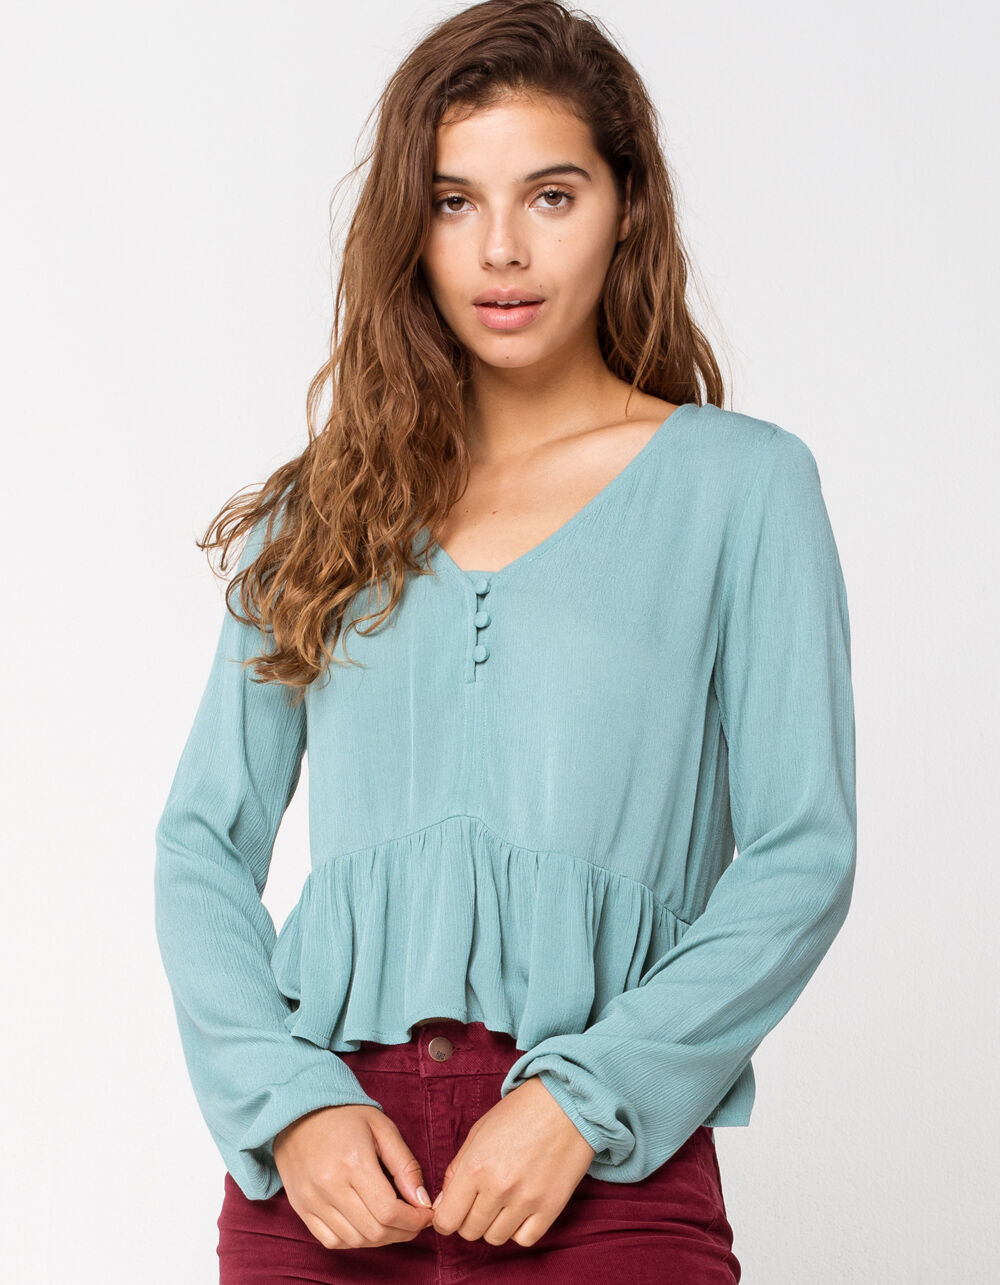 Image of MIMI CHICA Solid Henley Green Babydoll Top